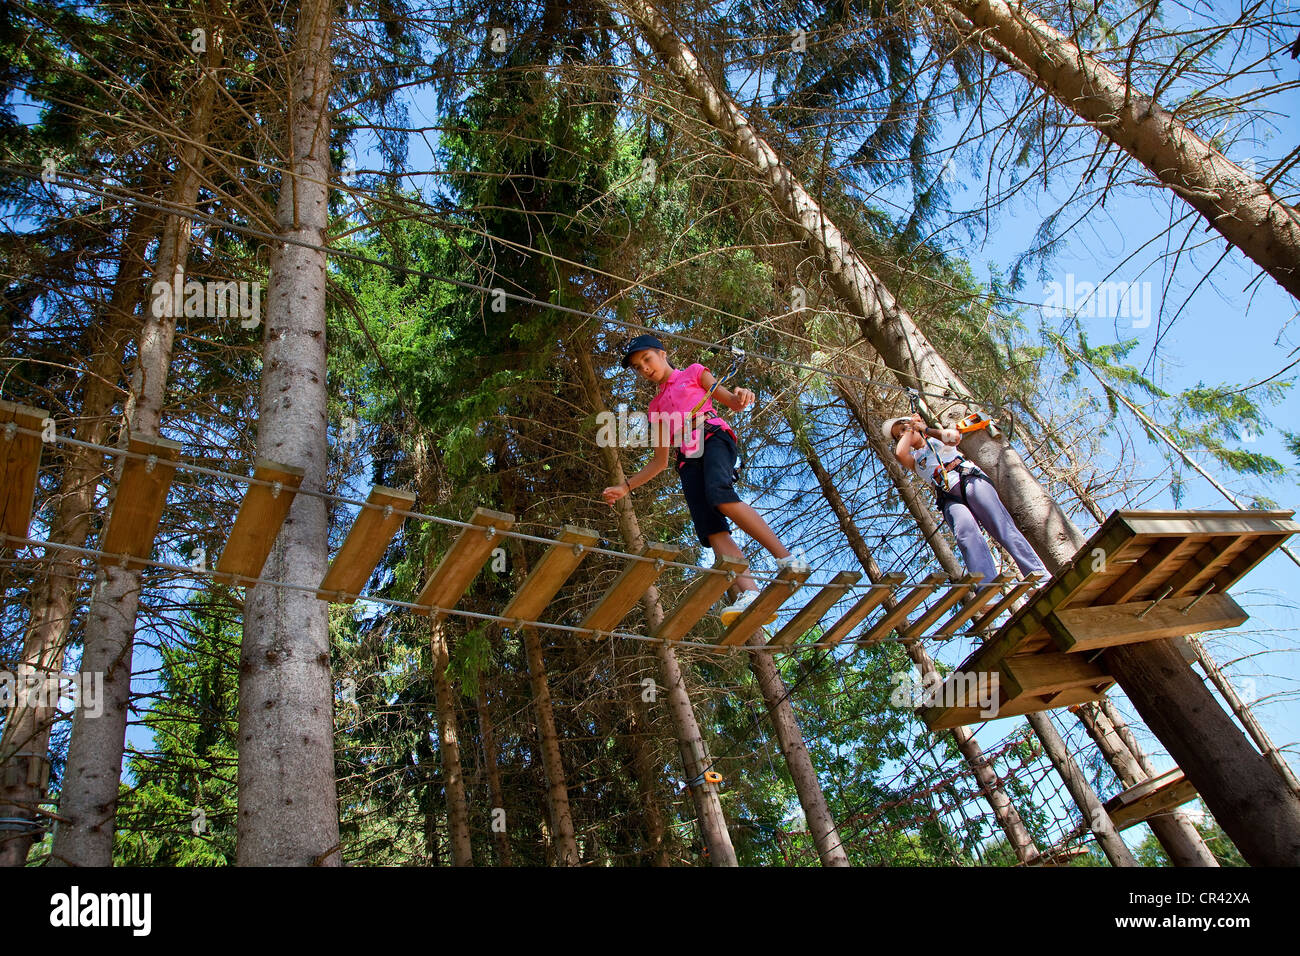 France, Isere, Adventure Forest in Marcieu pass - Stock Image